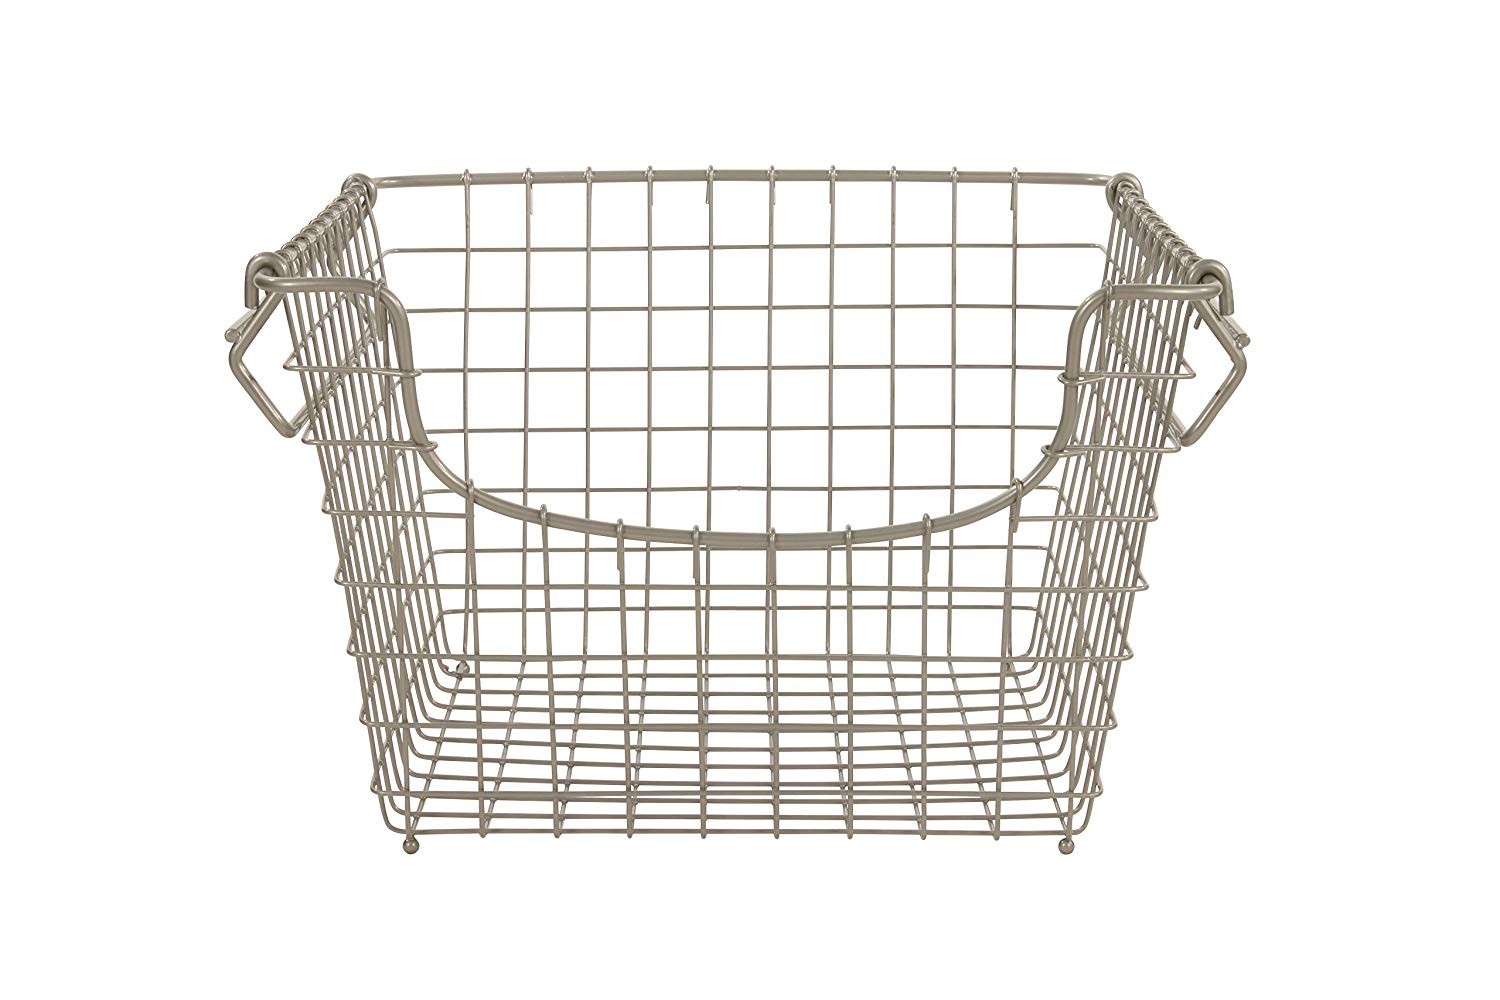 14 Deep Wire Shelf Basket (& 3 Dividers)